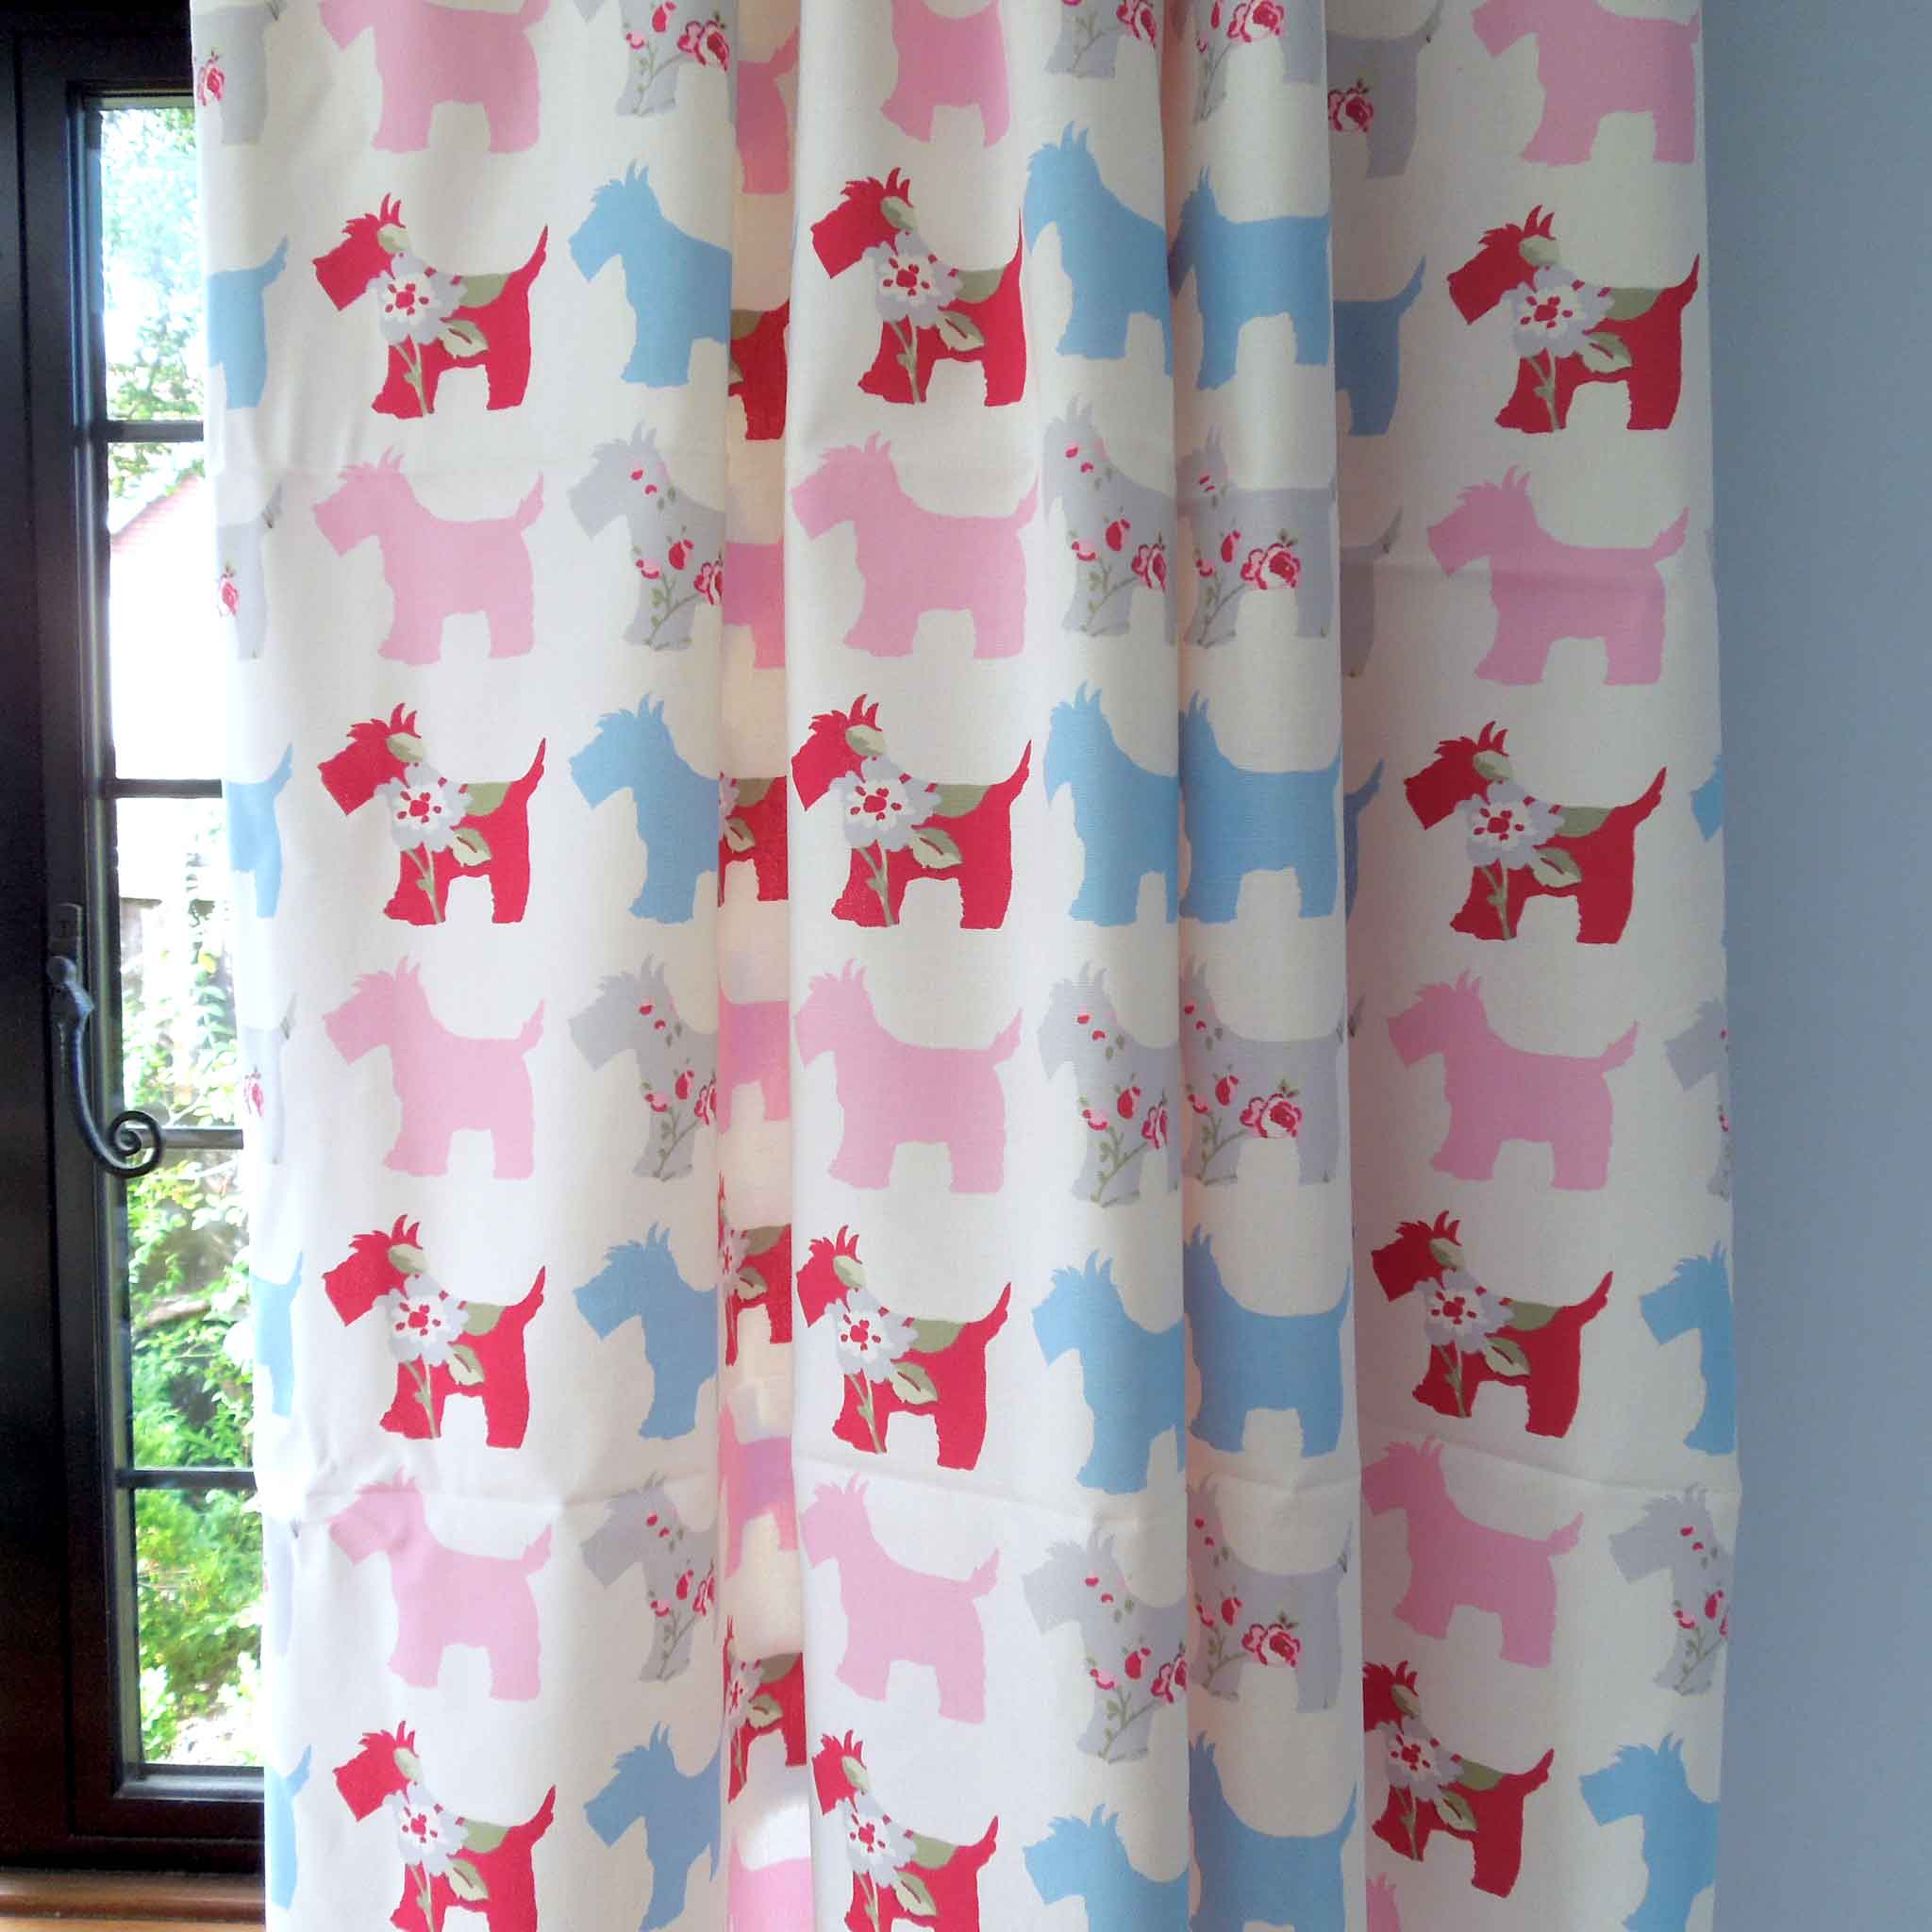 Pink Scotties Cotton Furnishing Fabric by Clarke & Clarke, part of the Vintage Classics collection - Fabric and Ribbon